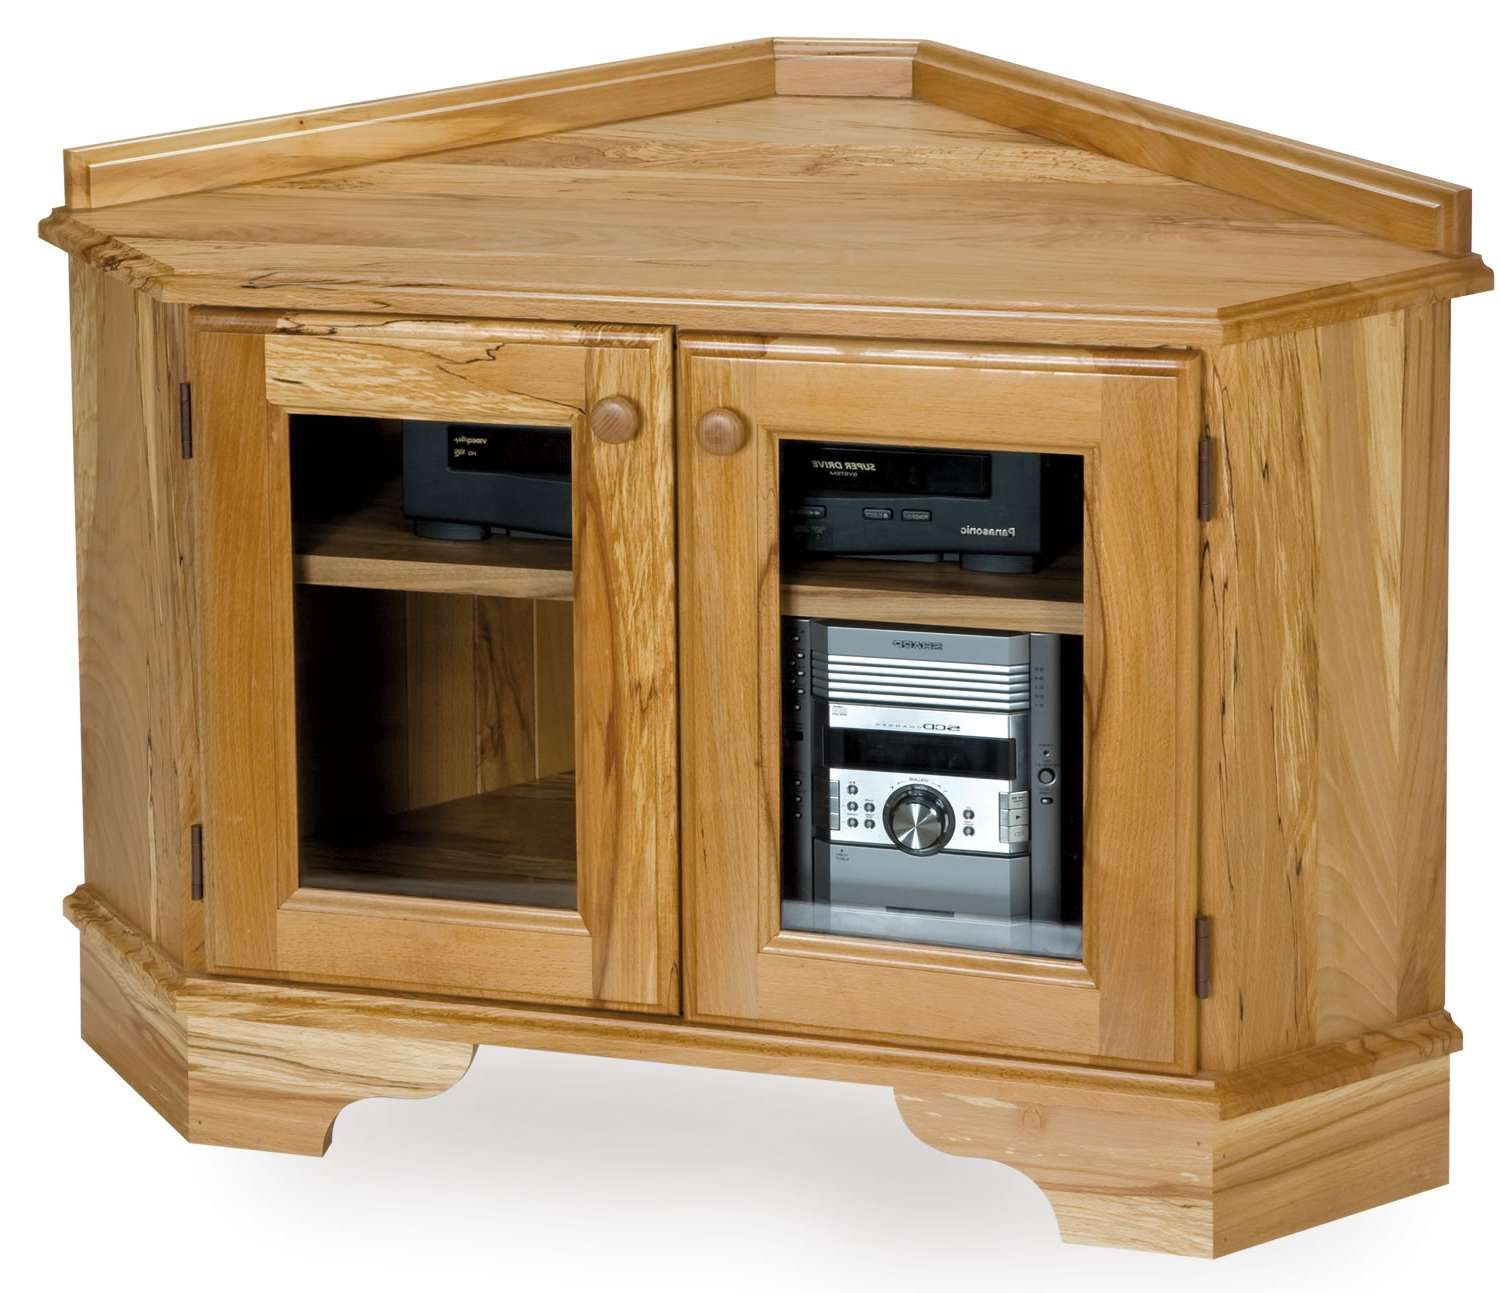 Solid Wood Tv Cabinet With Doors – Seeshiningstars Intended For Solid Wood Corner Tv Stands (View 16 of 20)